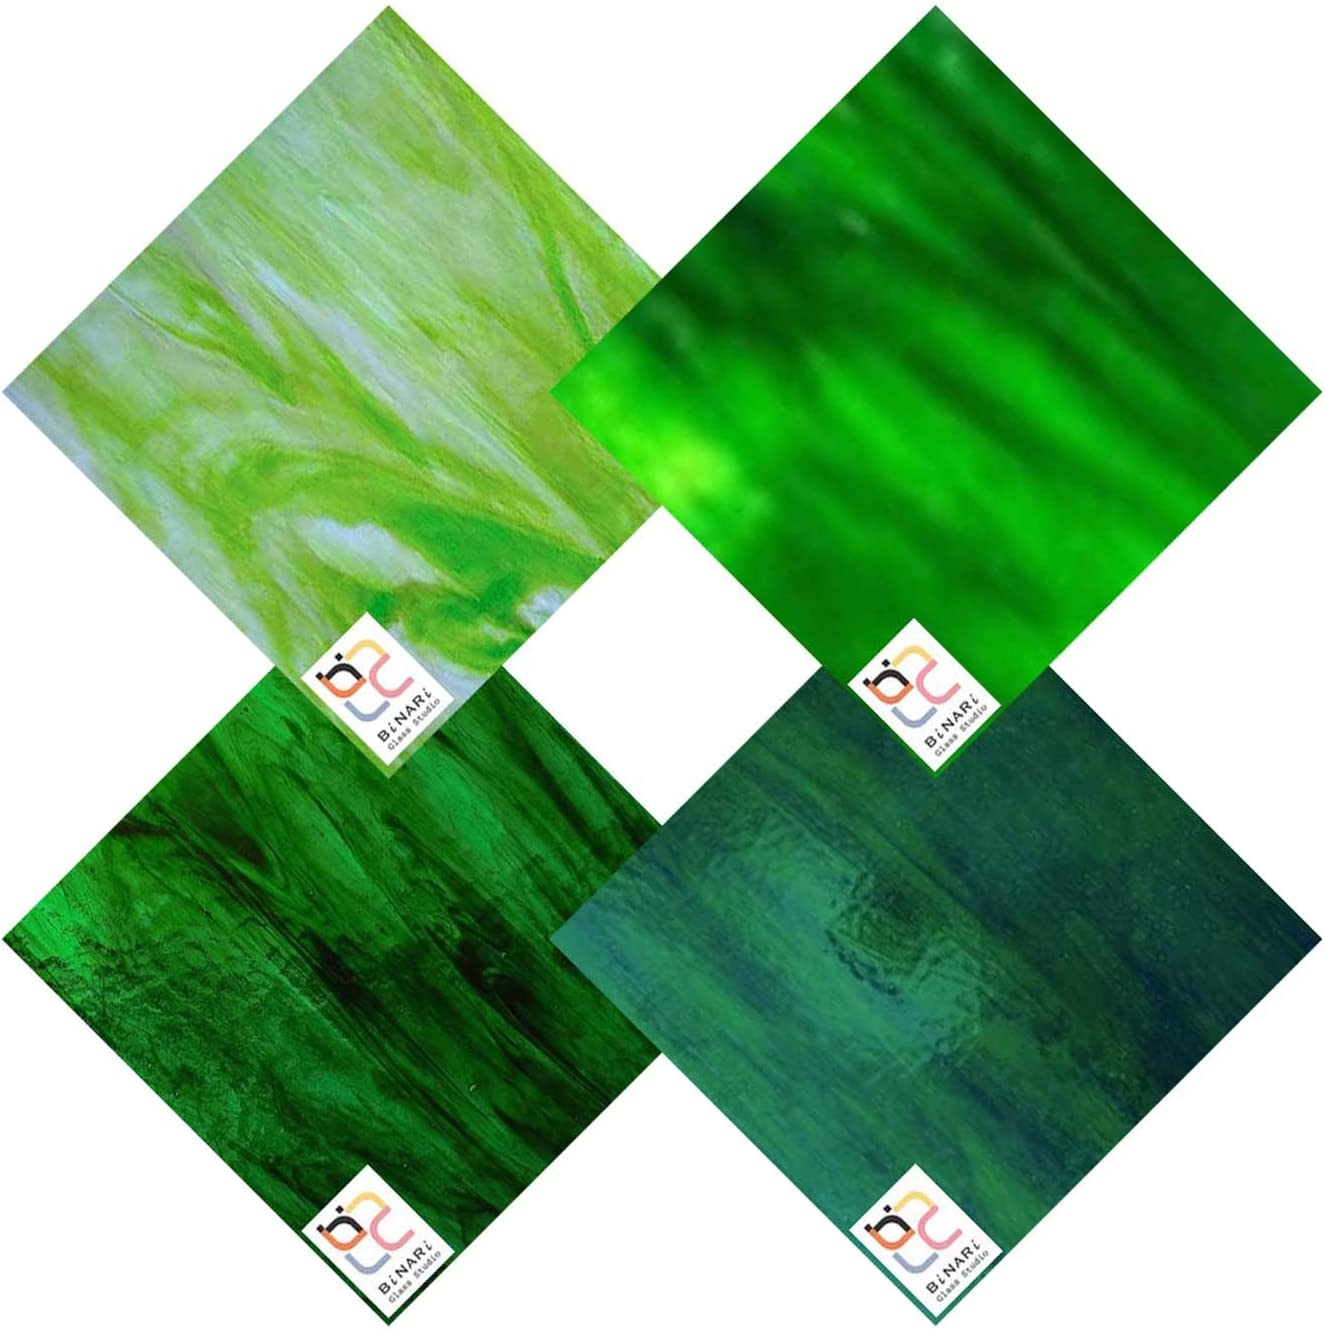 Wissmach 4 Sheet Mixed Color Variety Same day 2021 model shipping Glass Stained Pack Green